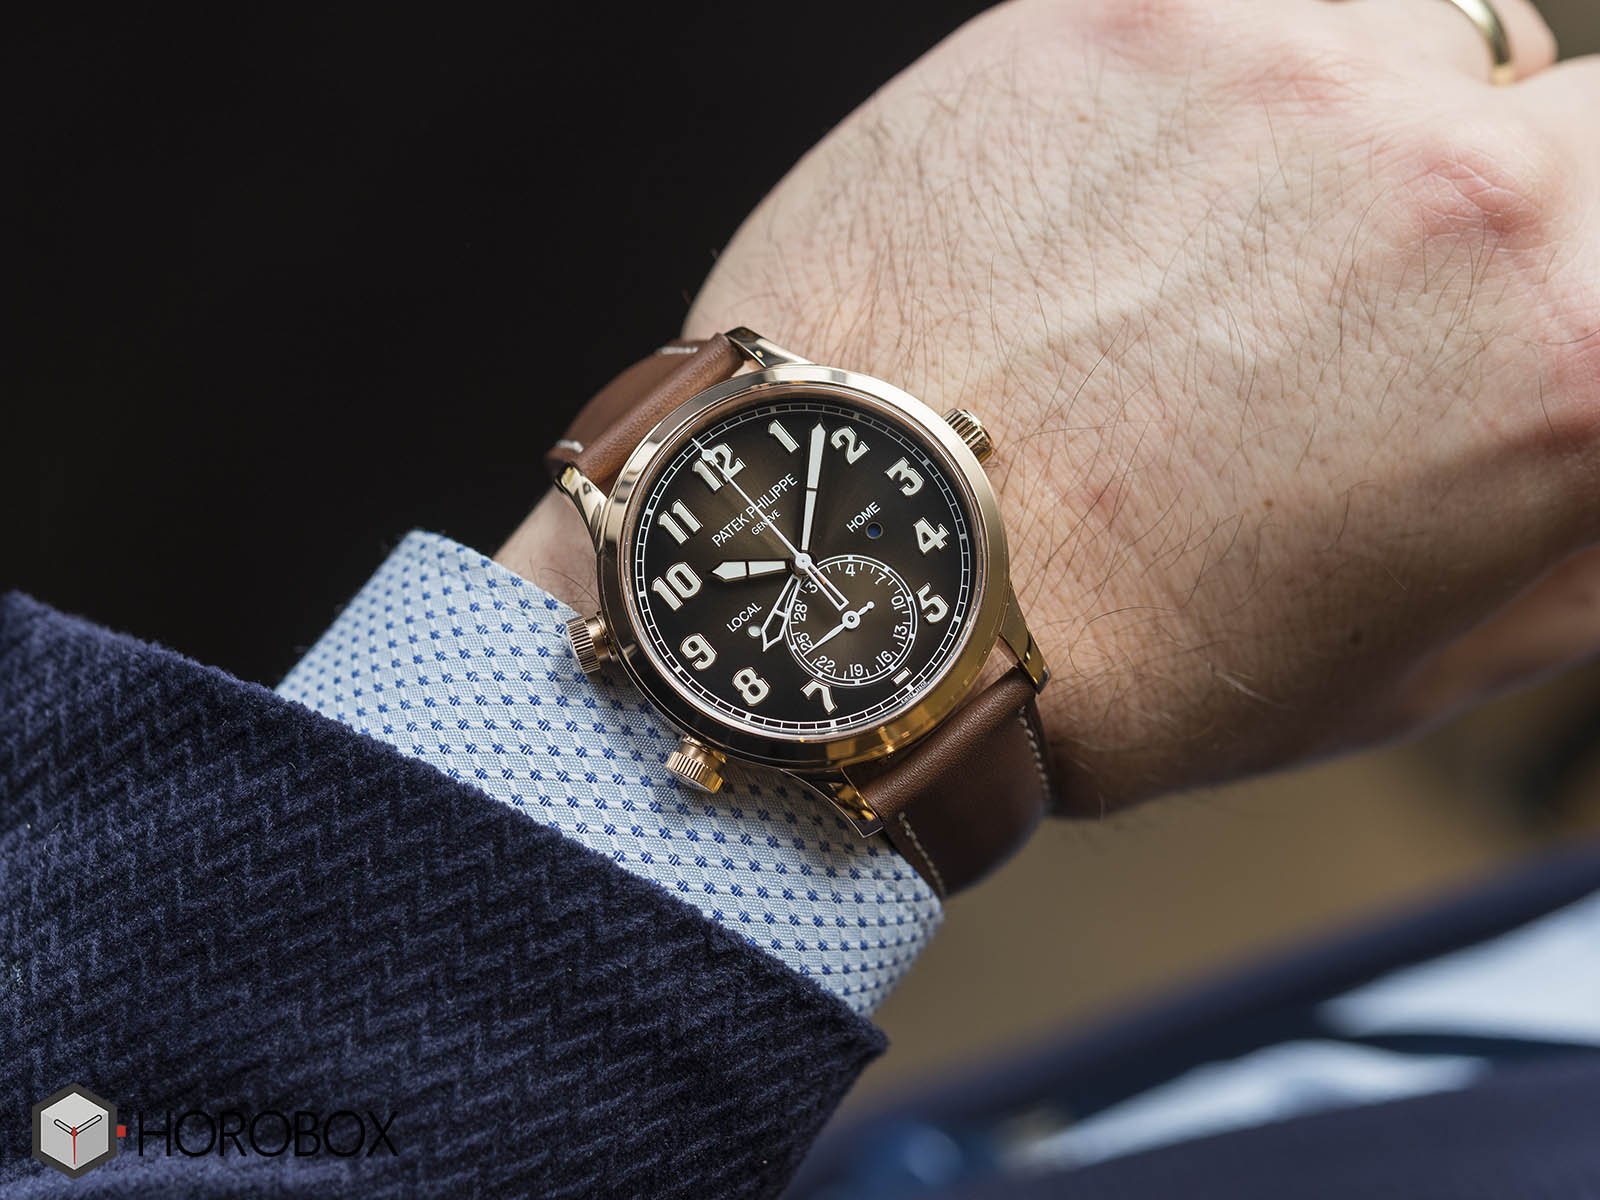 patek-philippe-calatrava-pilot-travel-time-5524r-9.jpg